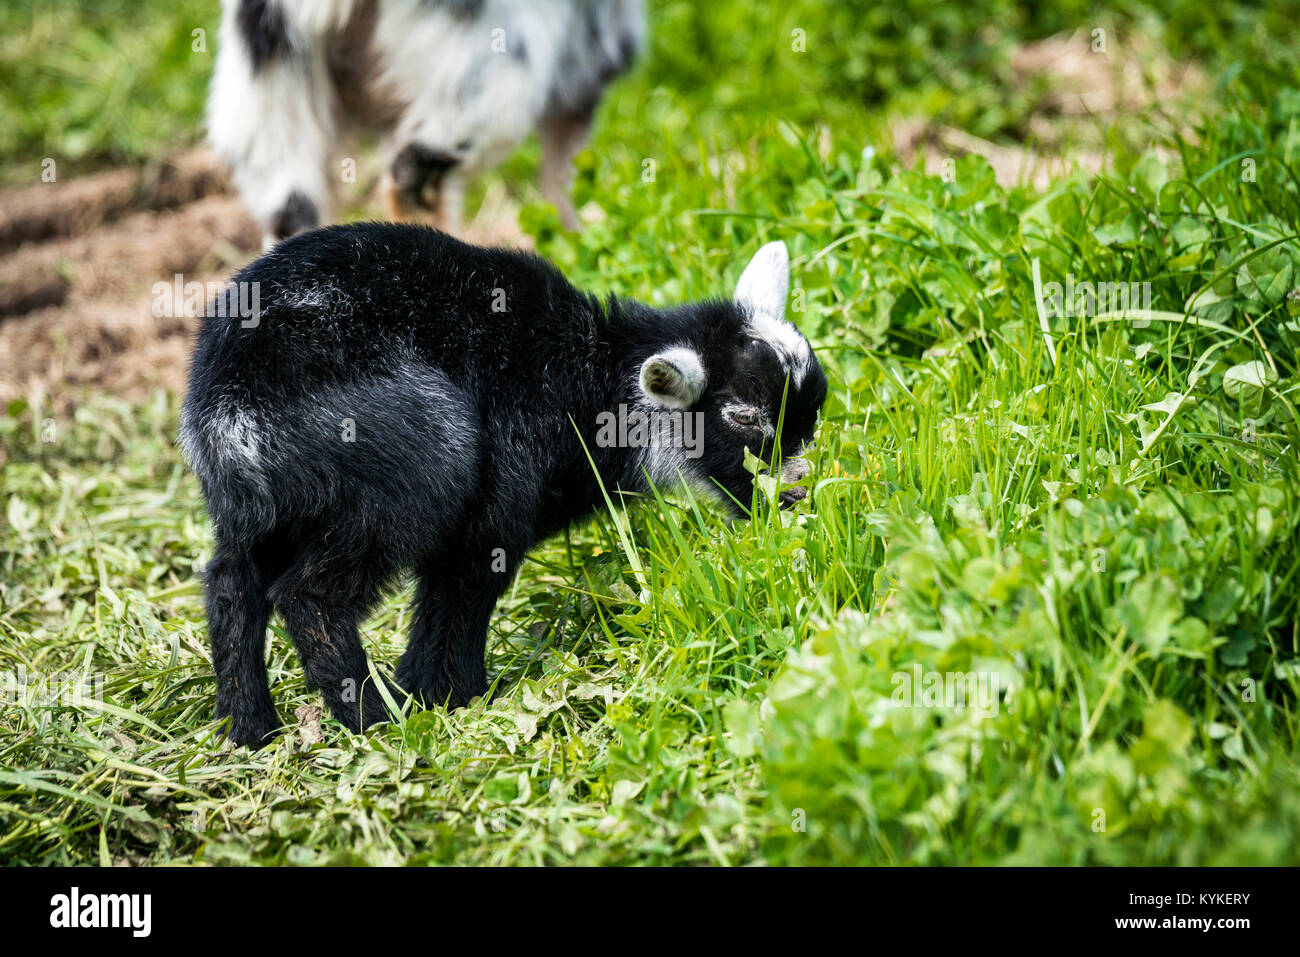 Little black goat youngster in black color eating green grass on a meadow - Stock Image